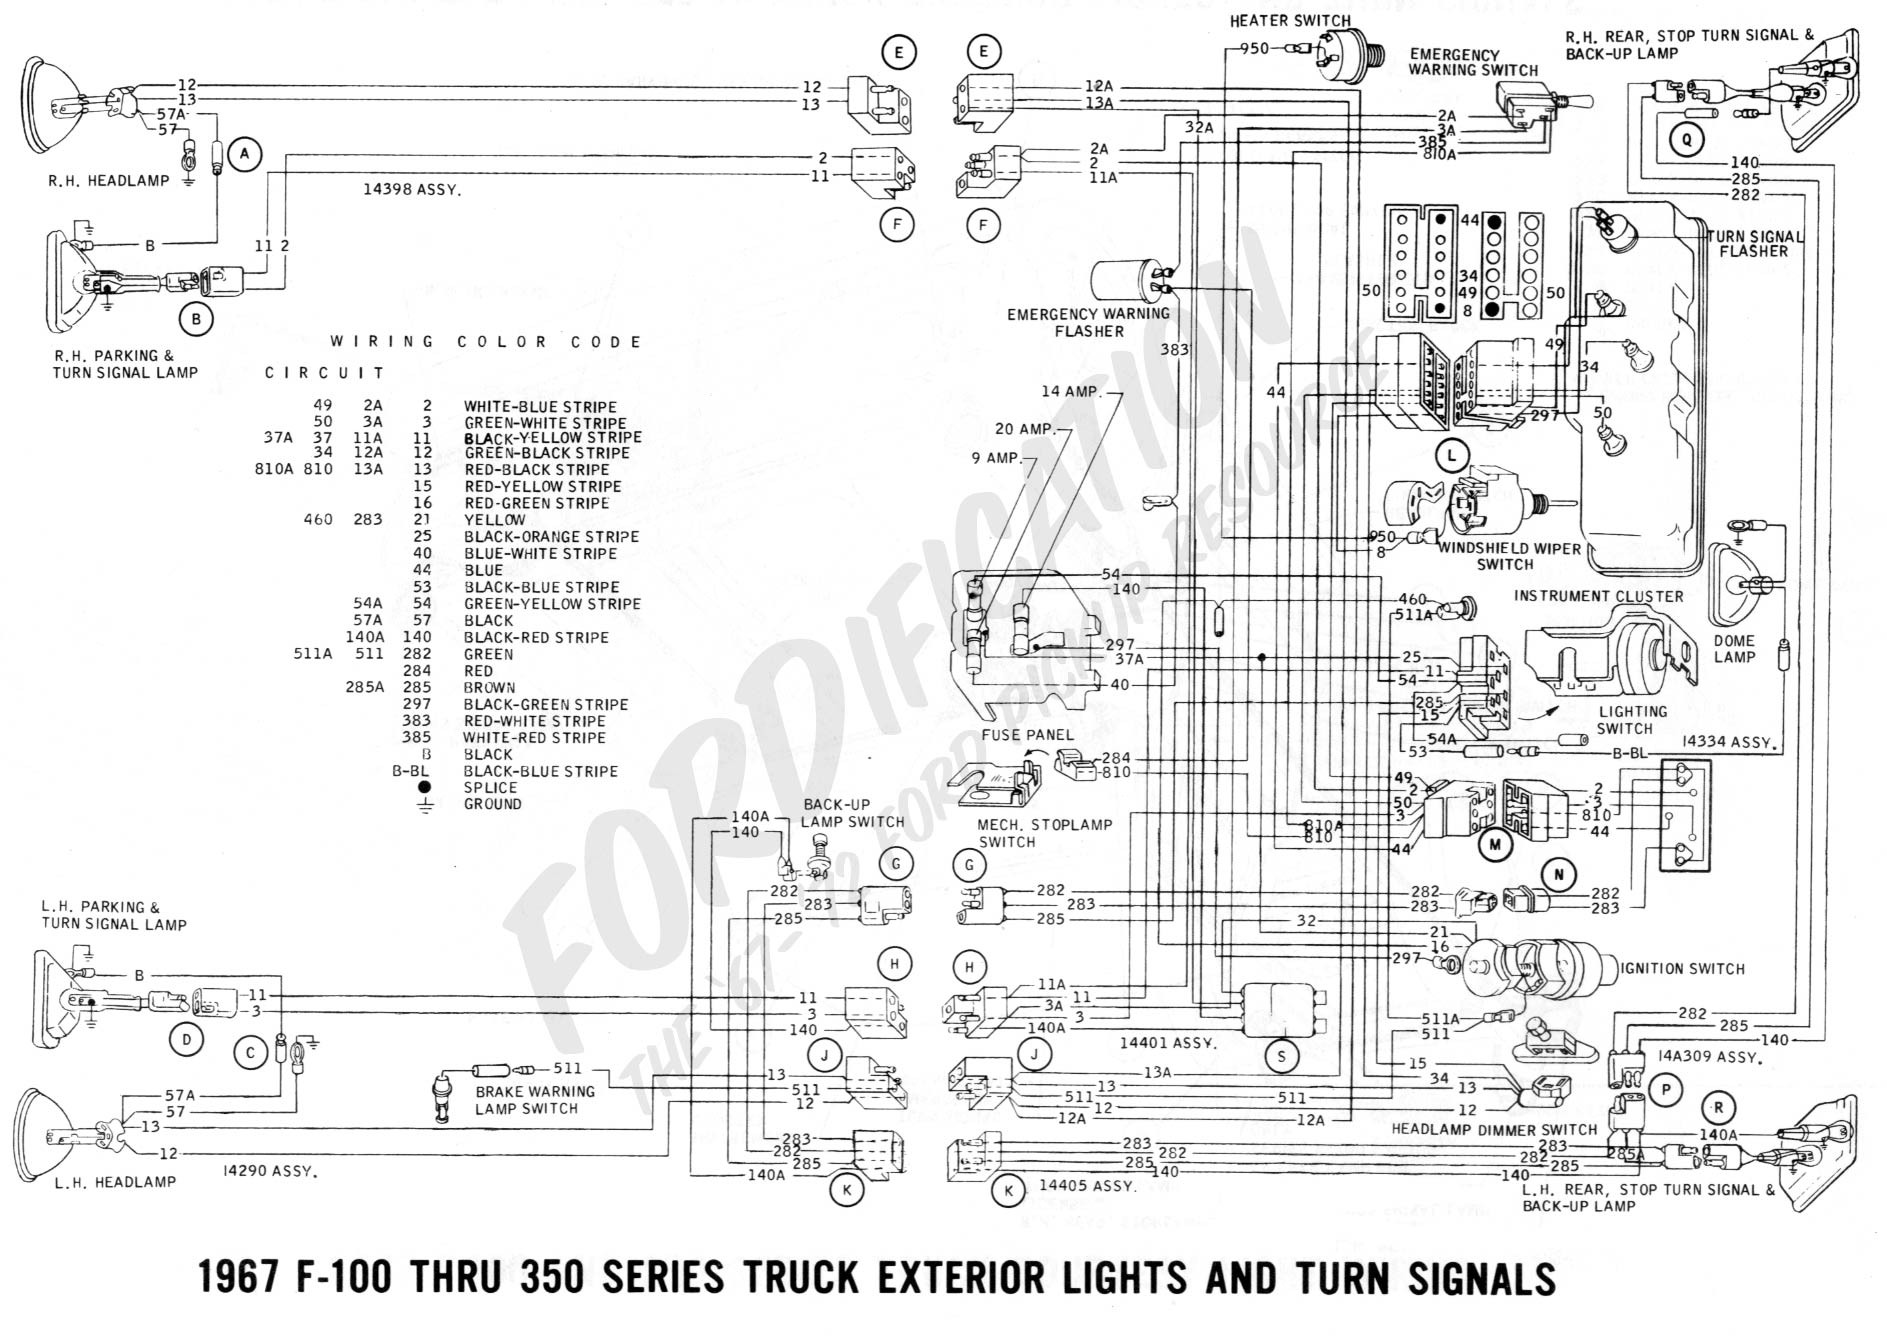 1967 chevy pickup steering column diagram wiring schematic rh viewdress com